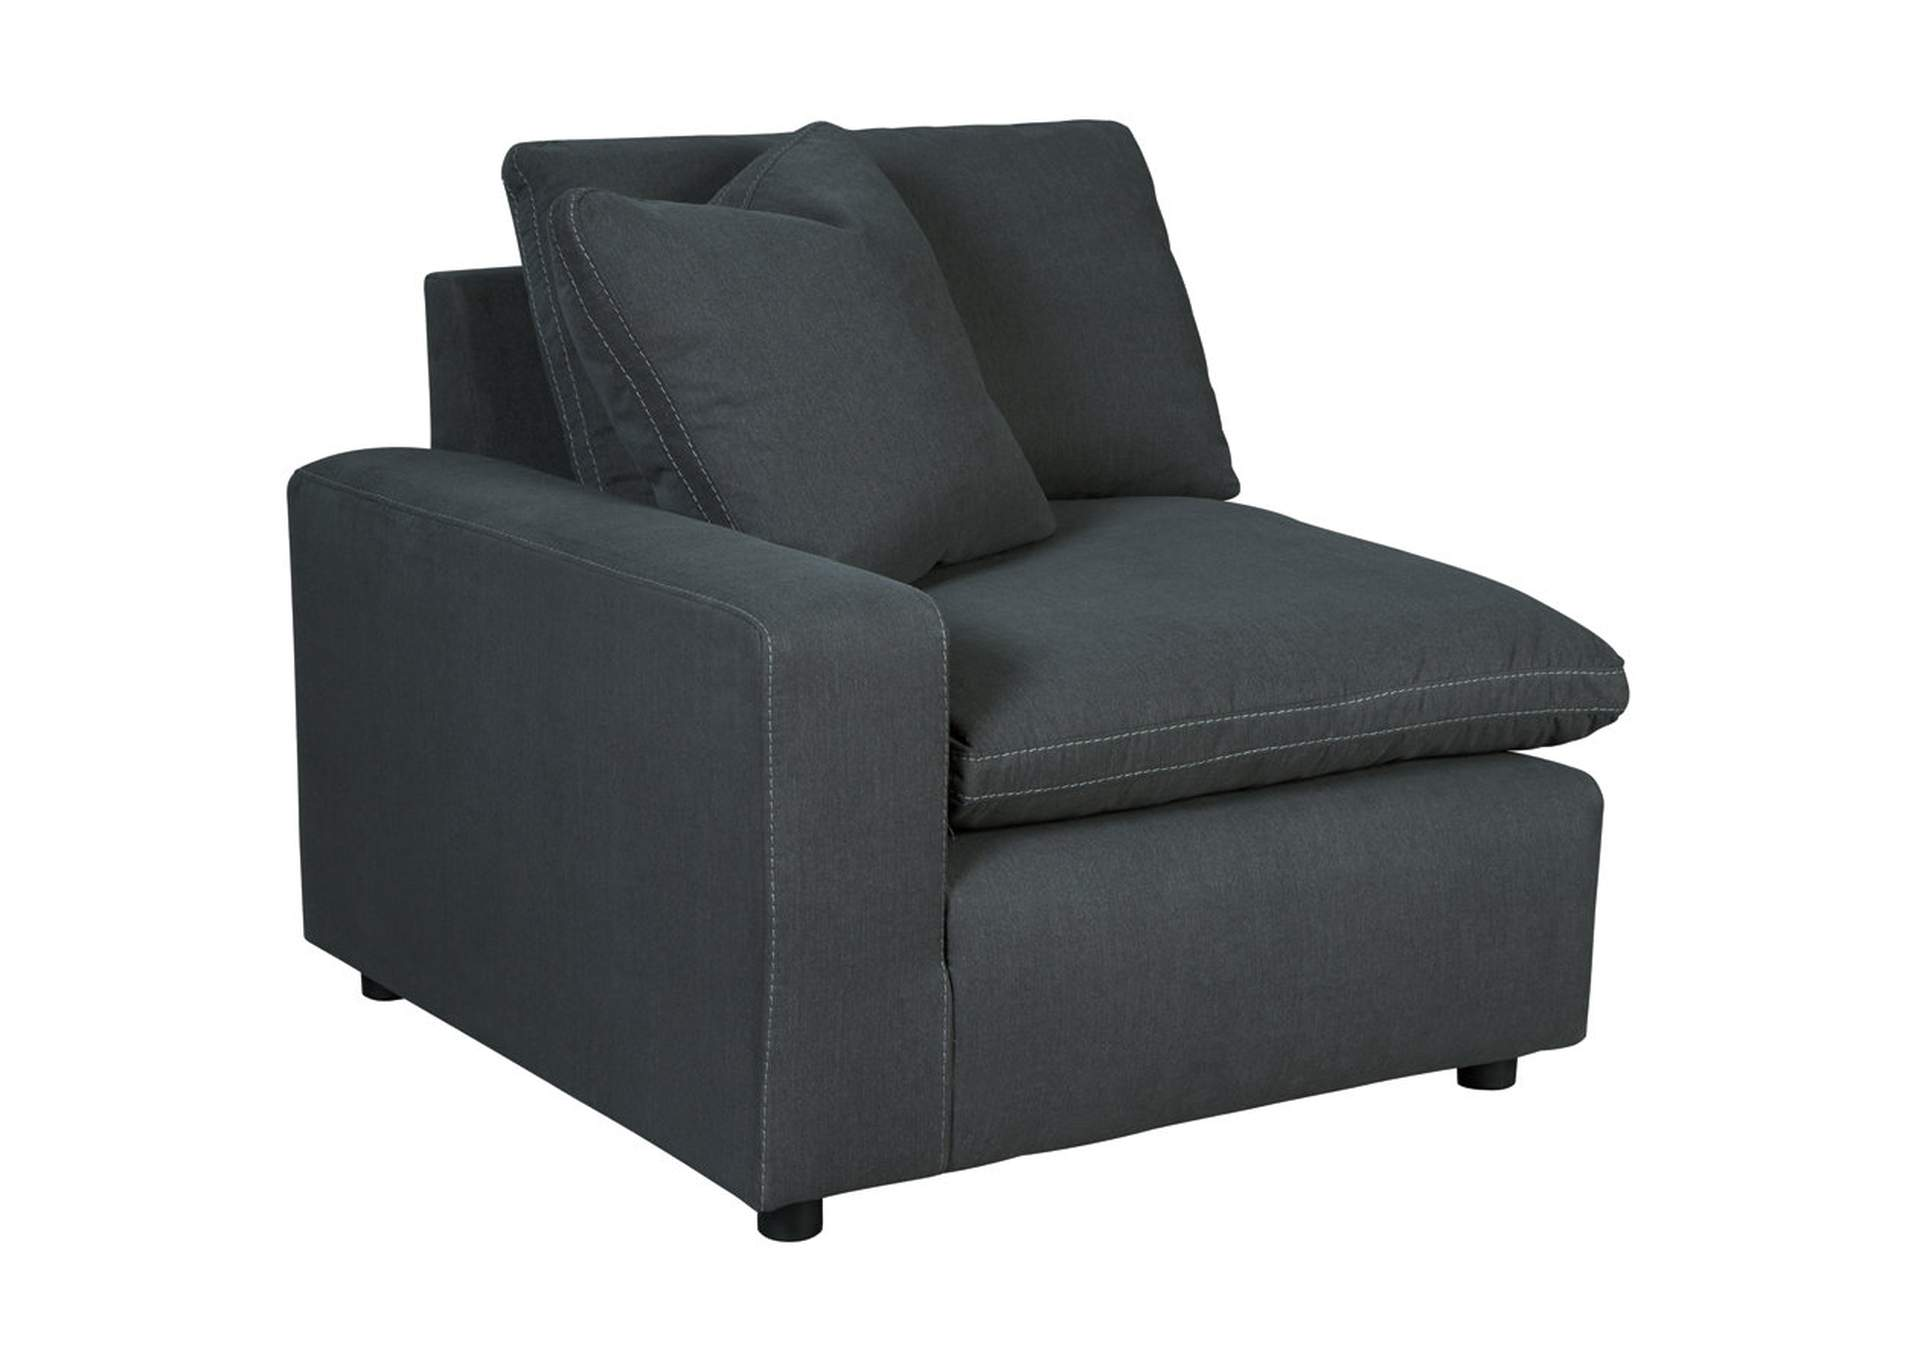 Savesto Charcoal LAF Corner Chair,Signature Design By Ashley